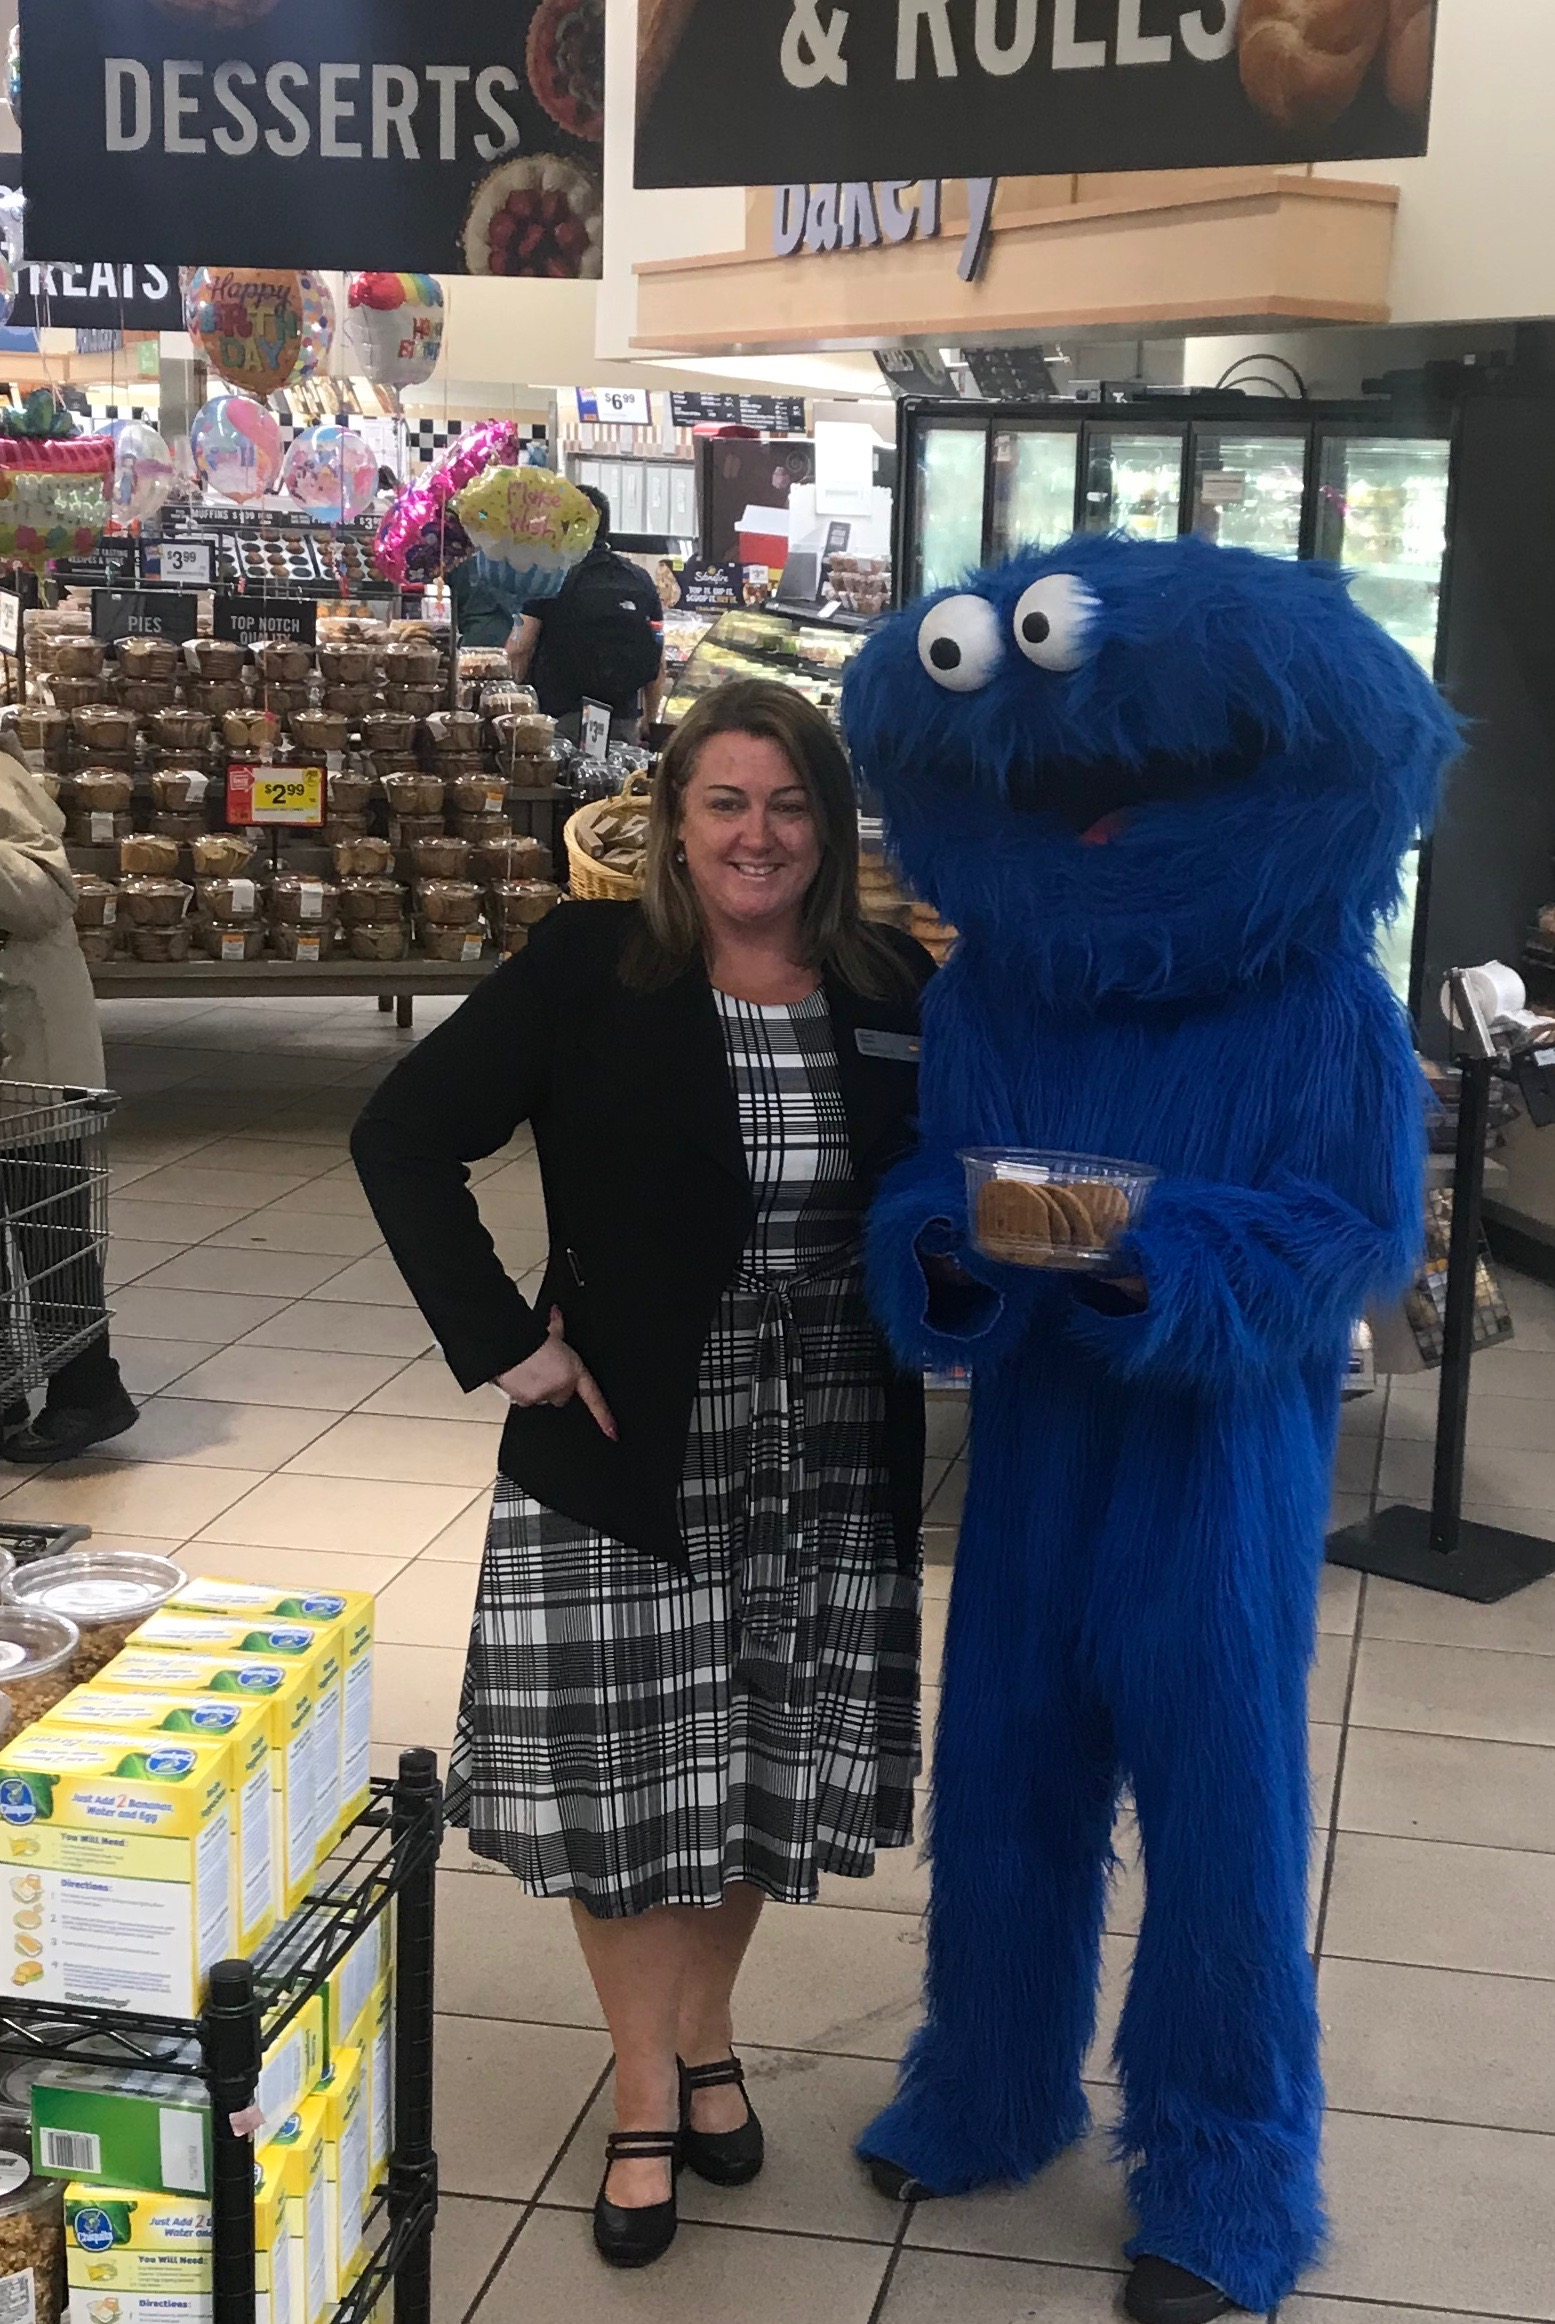 Store 2594 Creating A Selling Culture With The VP Of Sales Diane And The Cookie Monster!